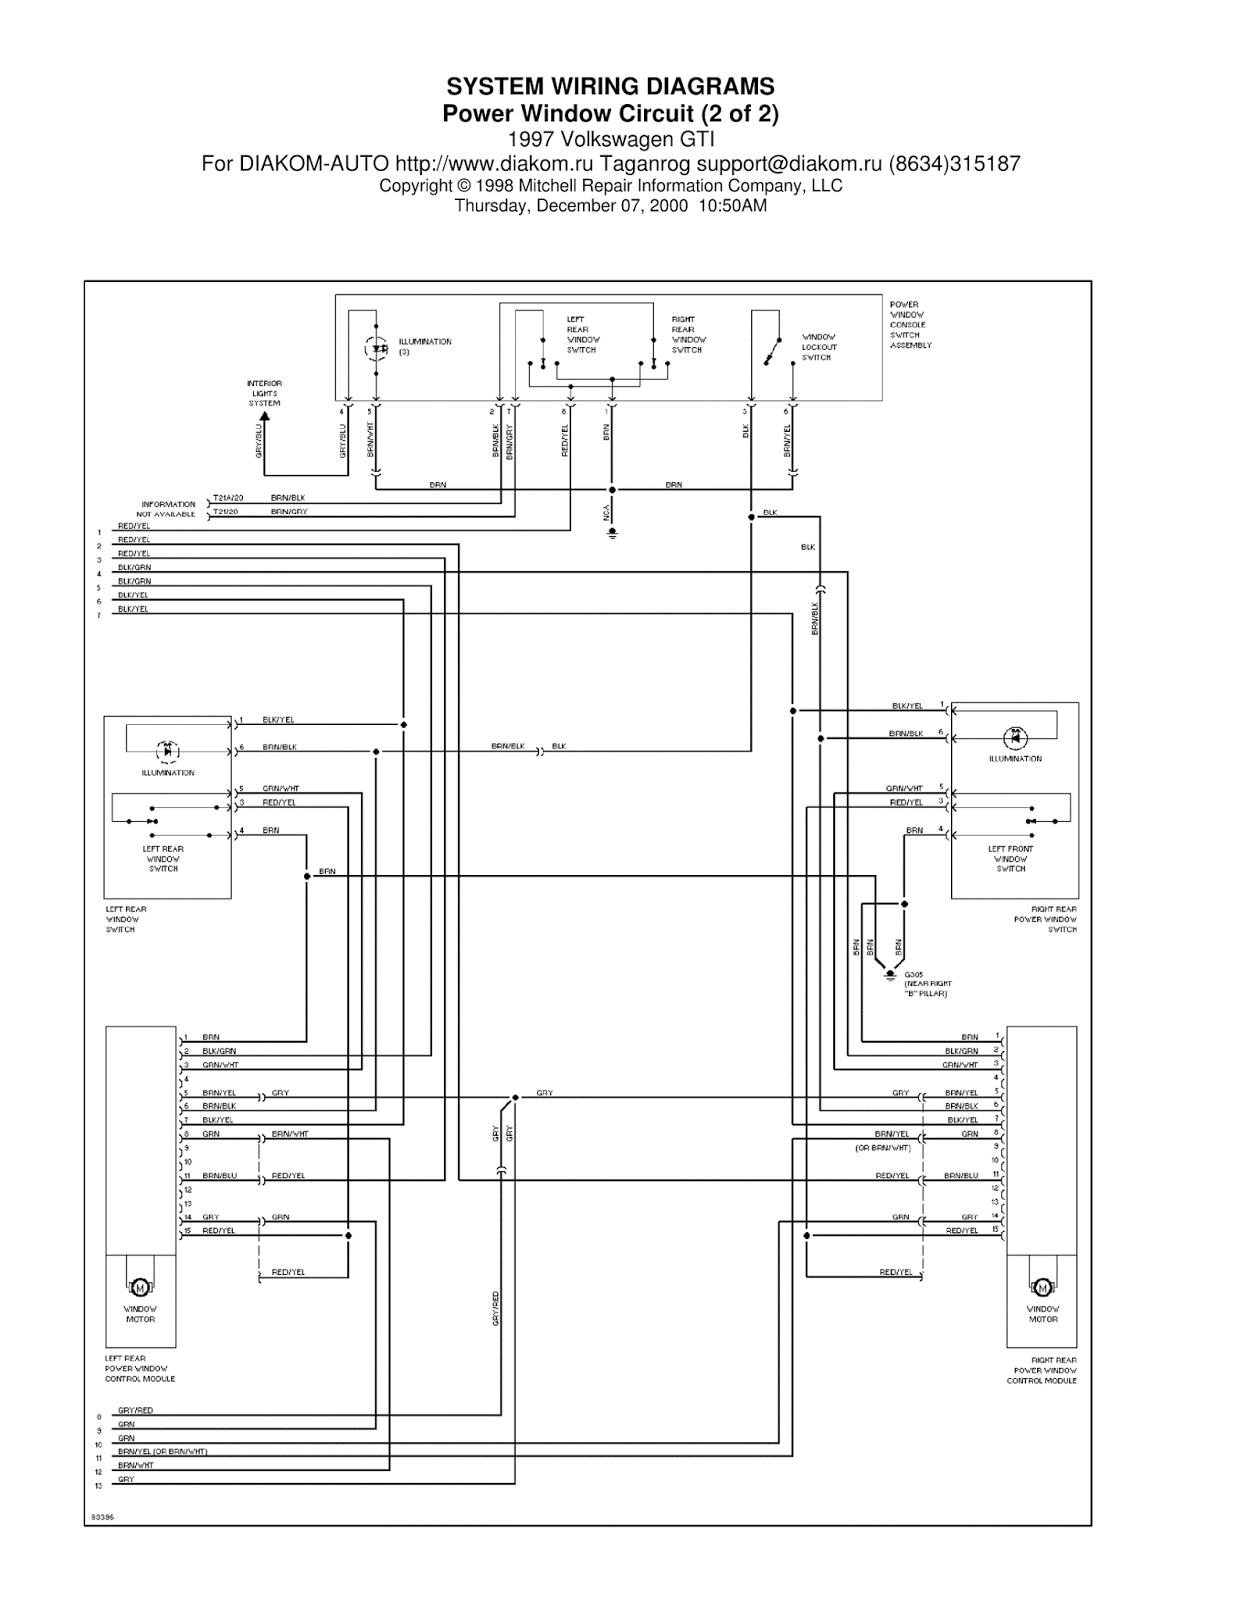 69 camaro power window wiring diagram. 69. free wiring diagrams, Wiring diagram